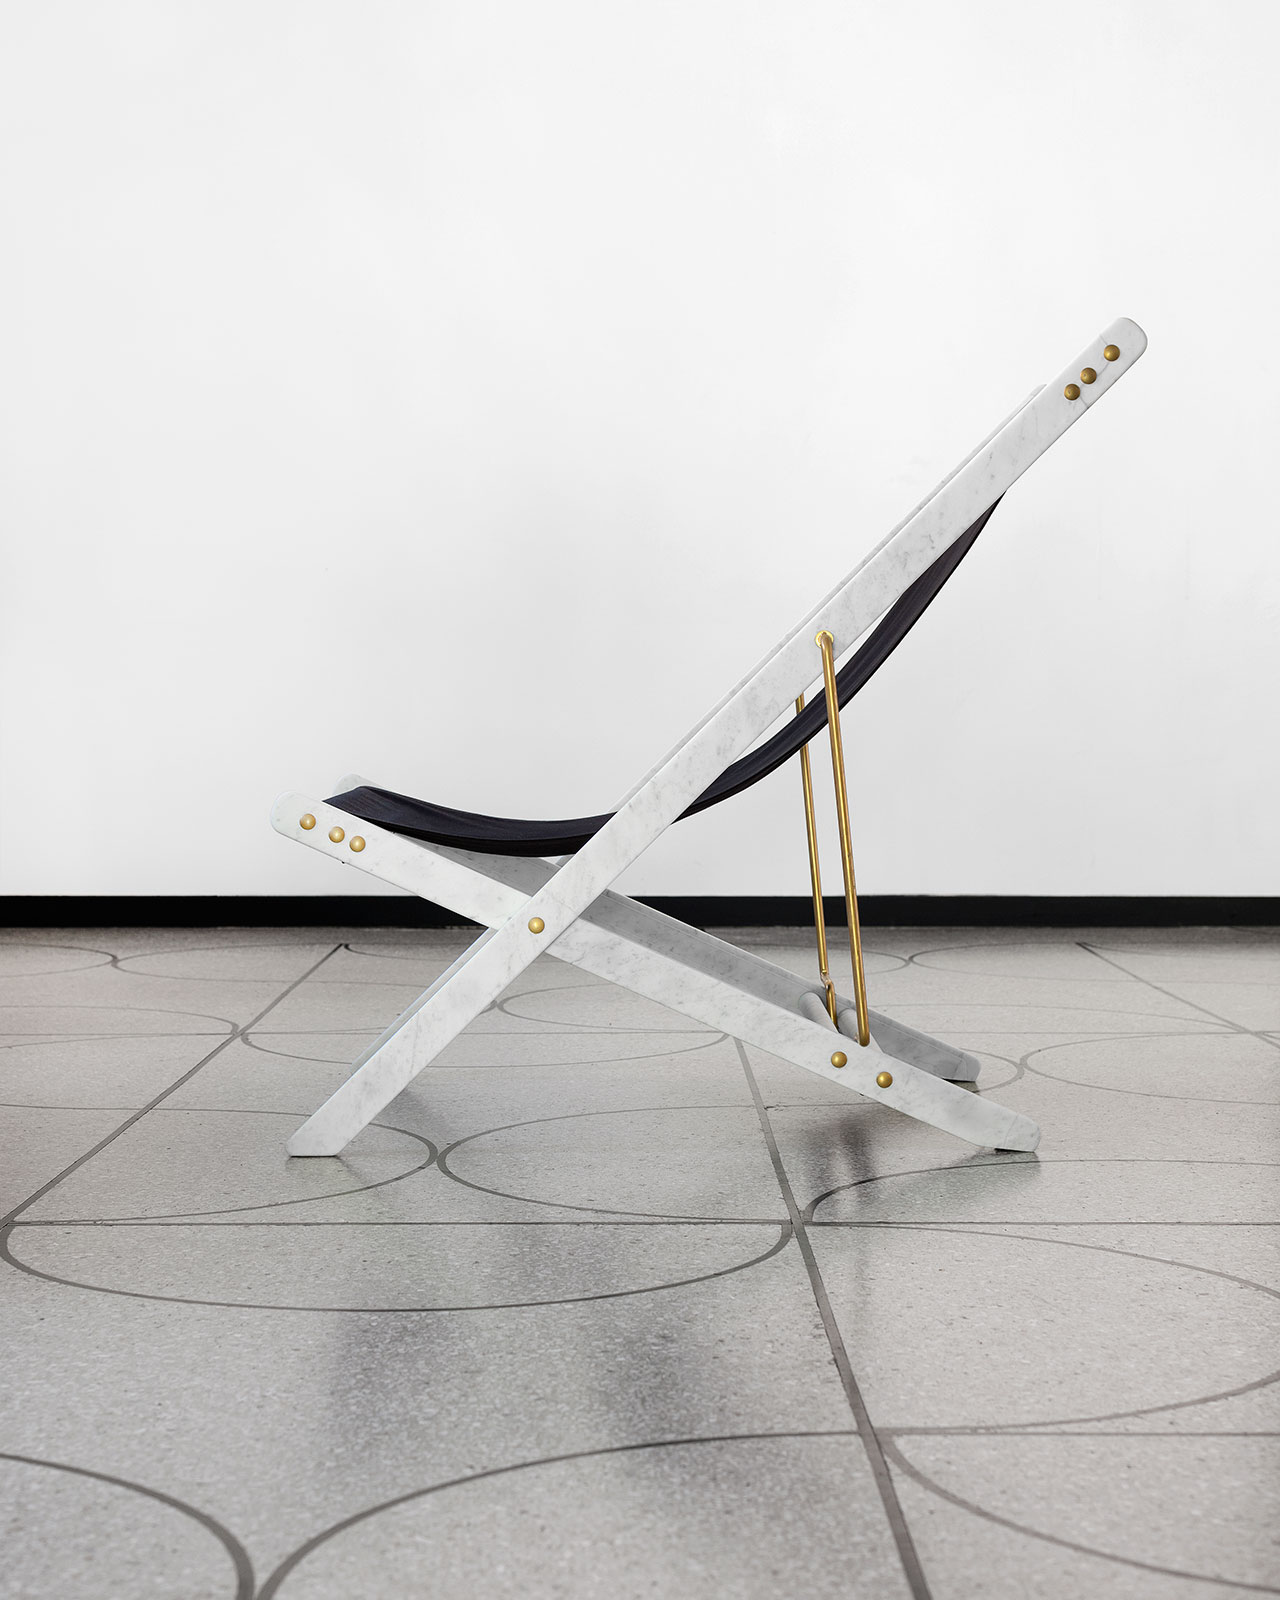 Veronica Todisco, Deck Chair for Camp, 2015. Carrara marble, fabric, brassed metal. Photo courtesy Camp Design Gallery.